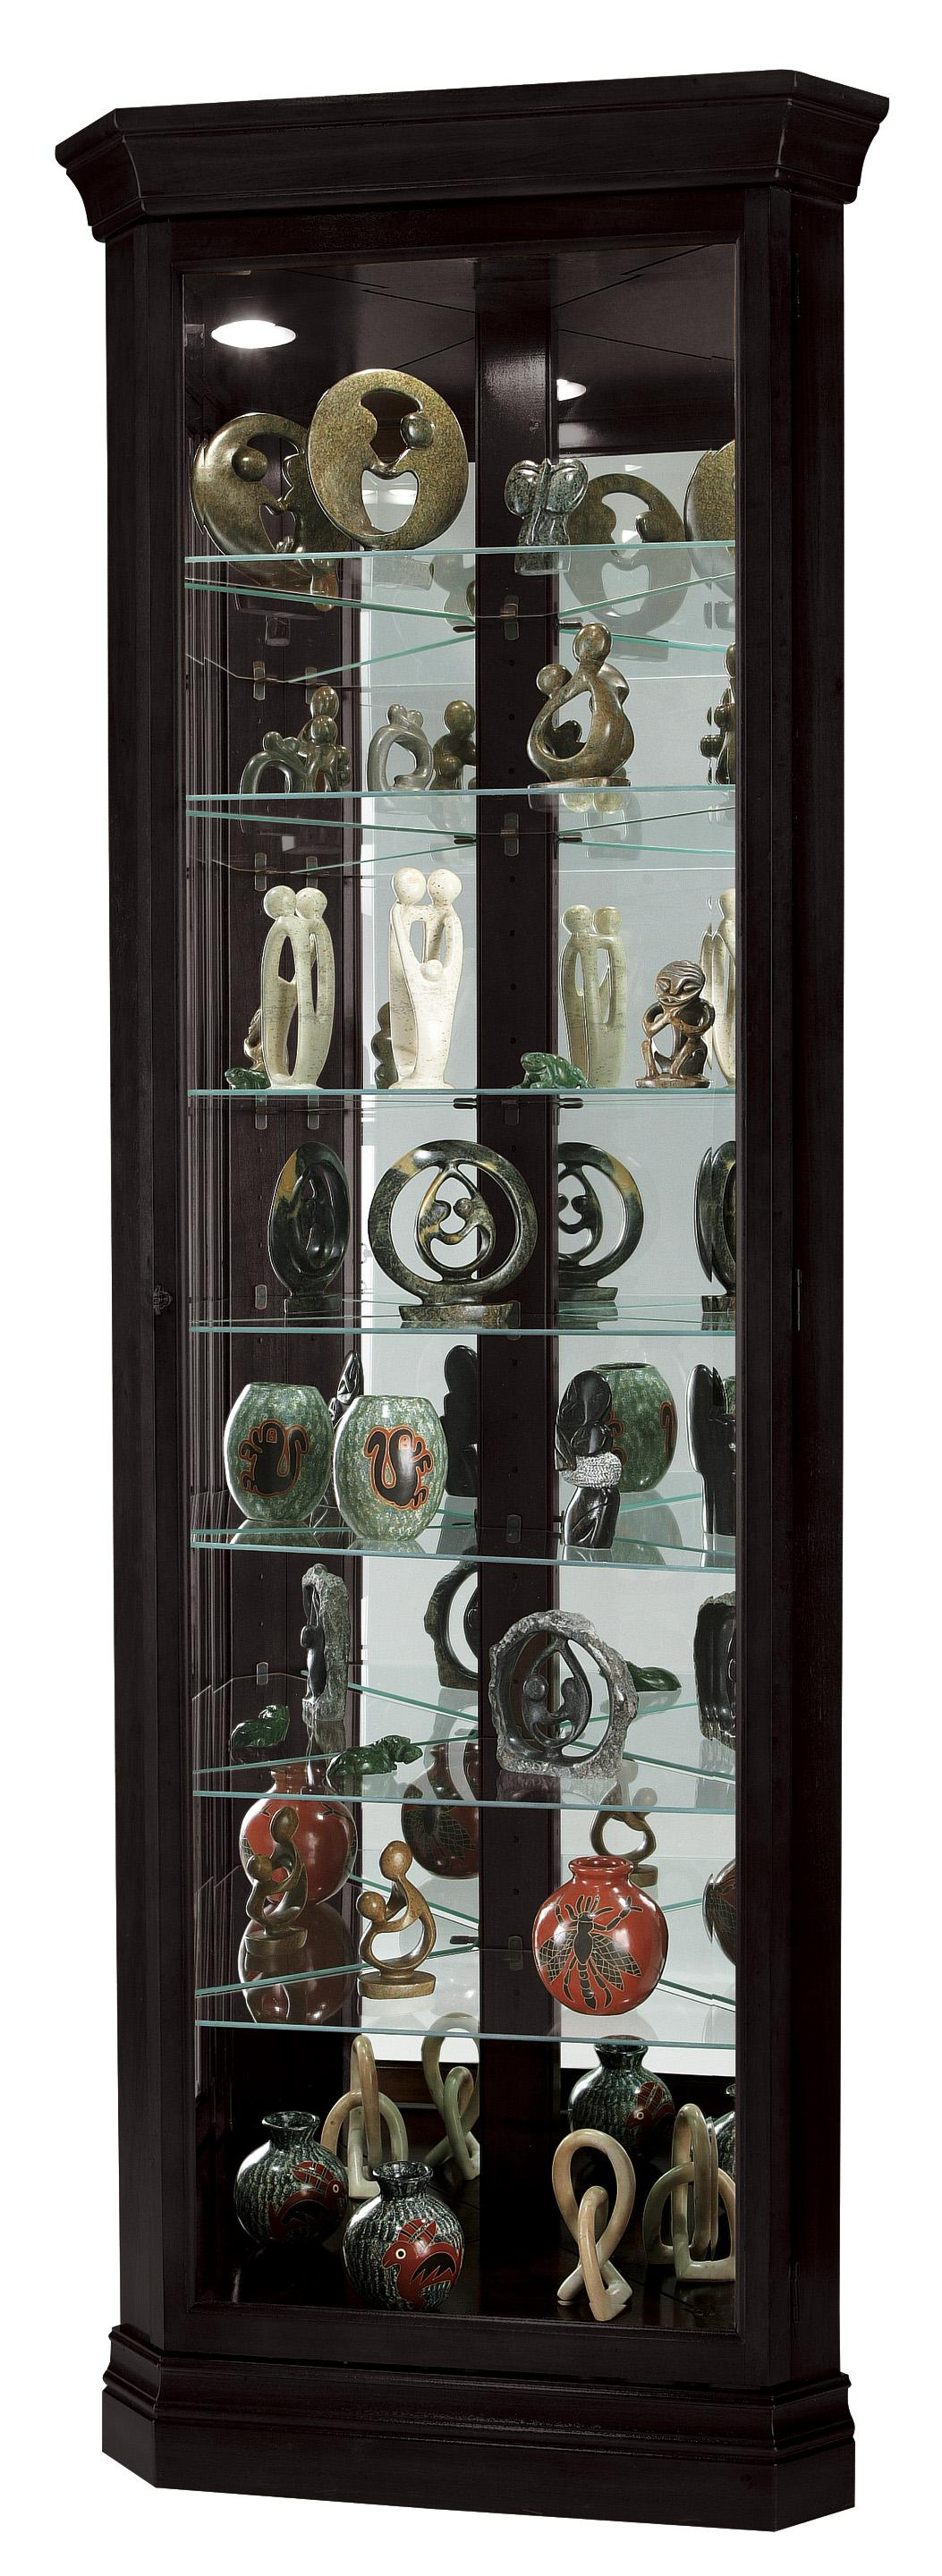 Howard Miller Corner Curios Drake Display Cabinet - Item Number: 680-487